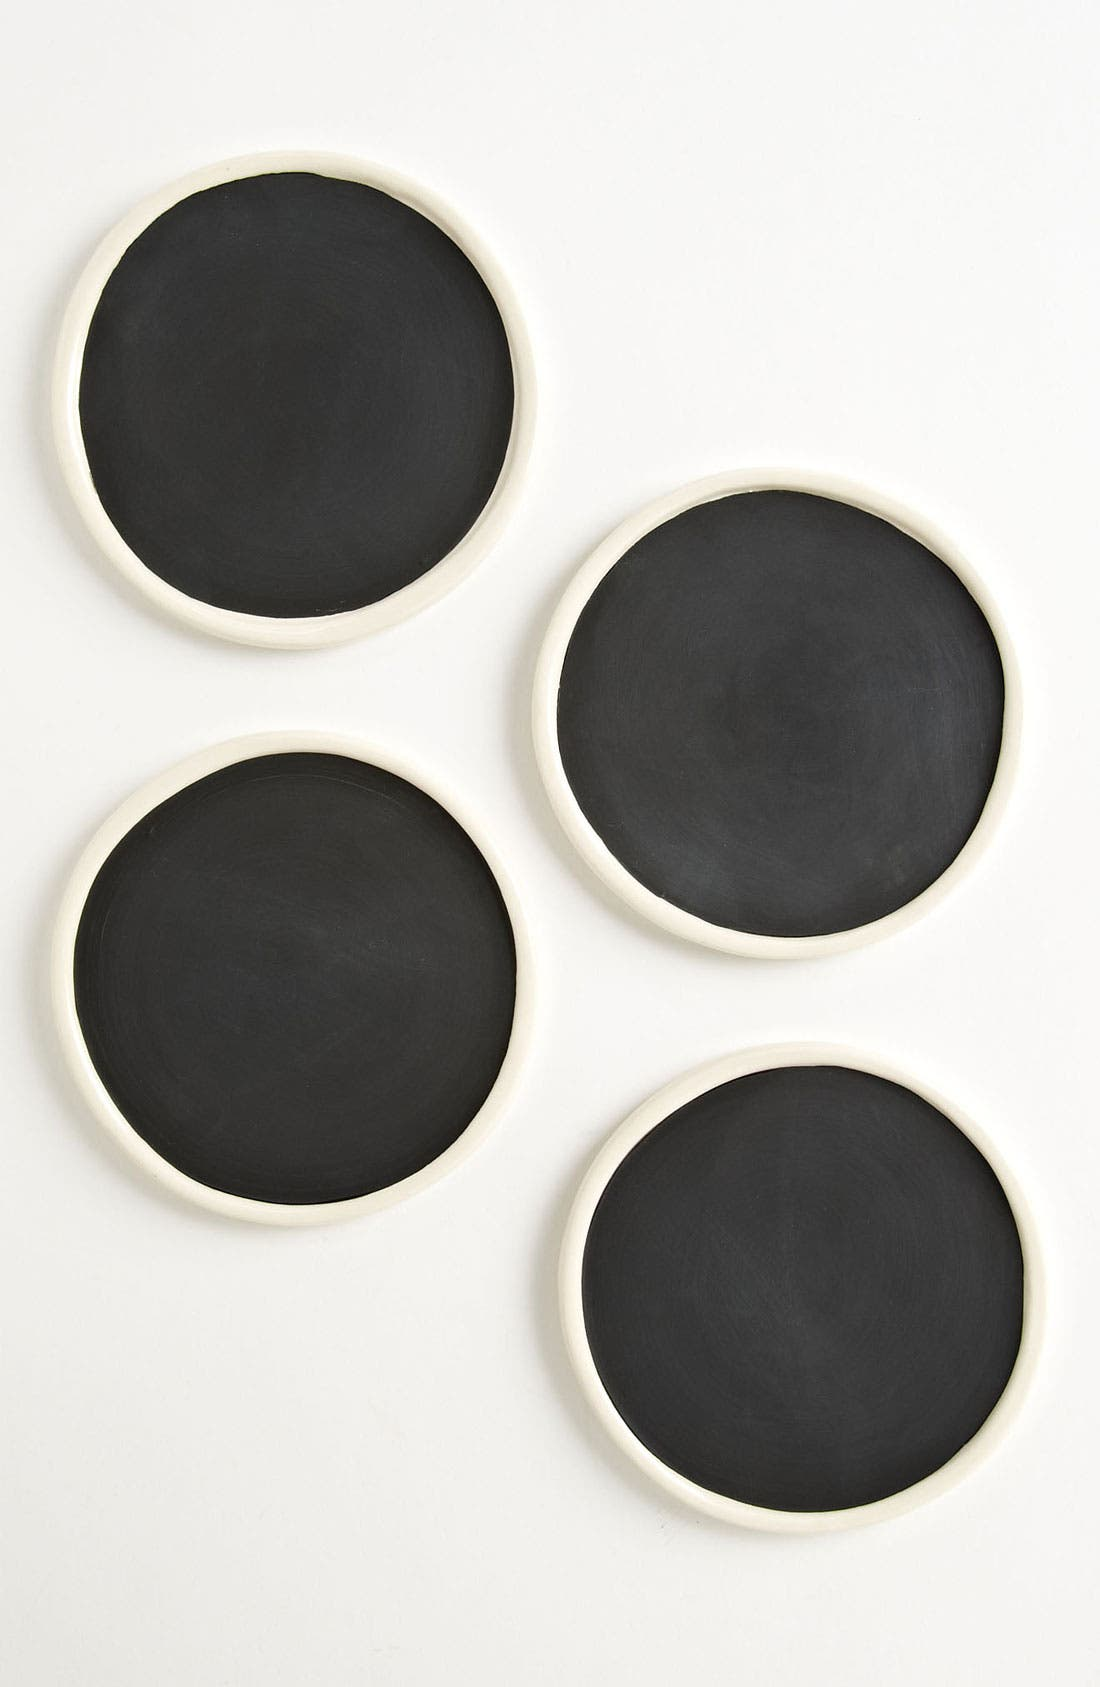 Alternate Image 1 Selected - Rae Dunn by Magenta 'Take Note' Chalkboard Coasters (Set of 4)